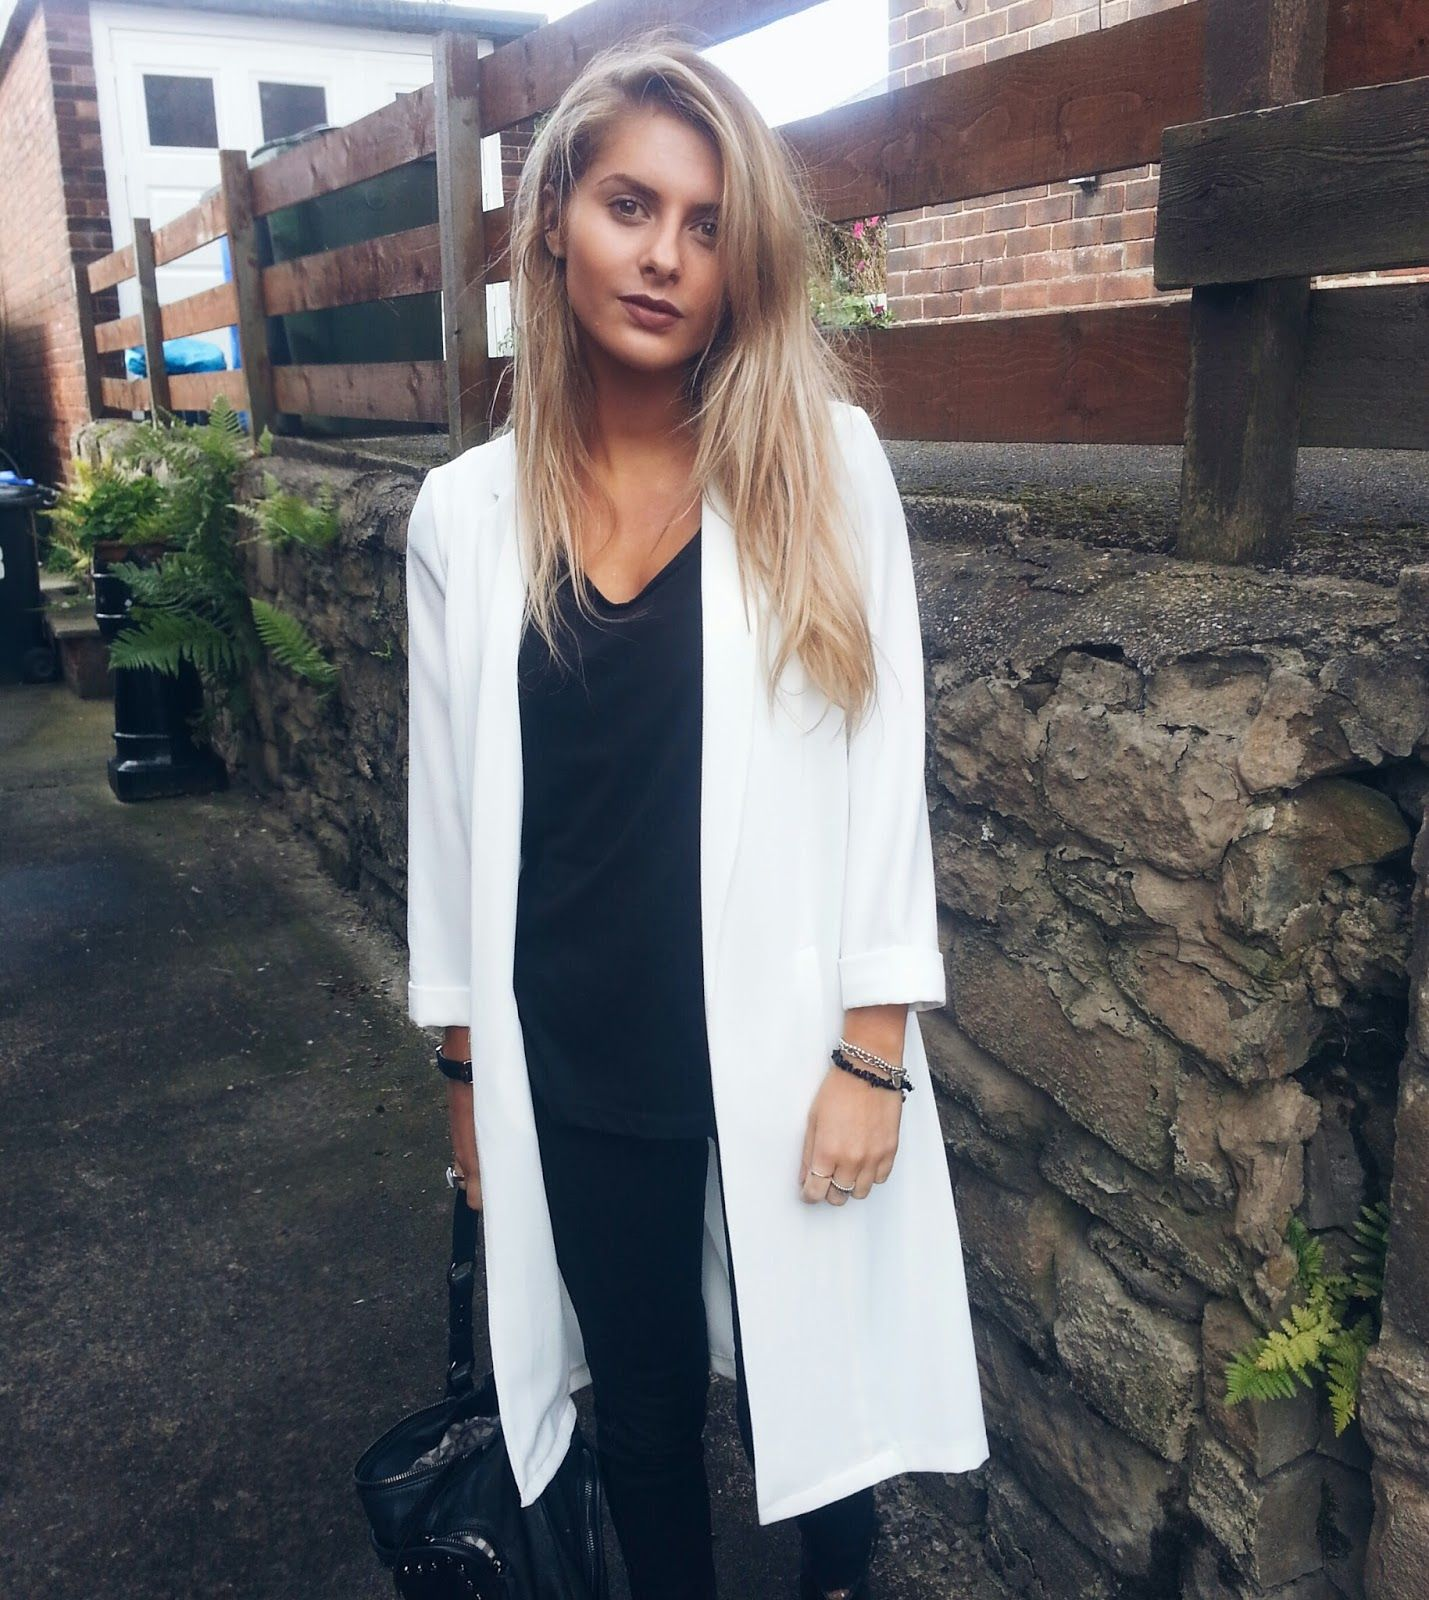 Fashion Influx // UK Fashion Blog: INSTAGRAM OUTFIT: DUSTER COAT ...